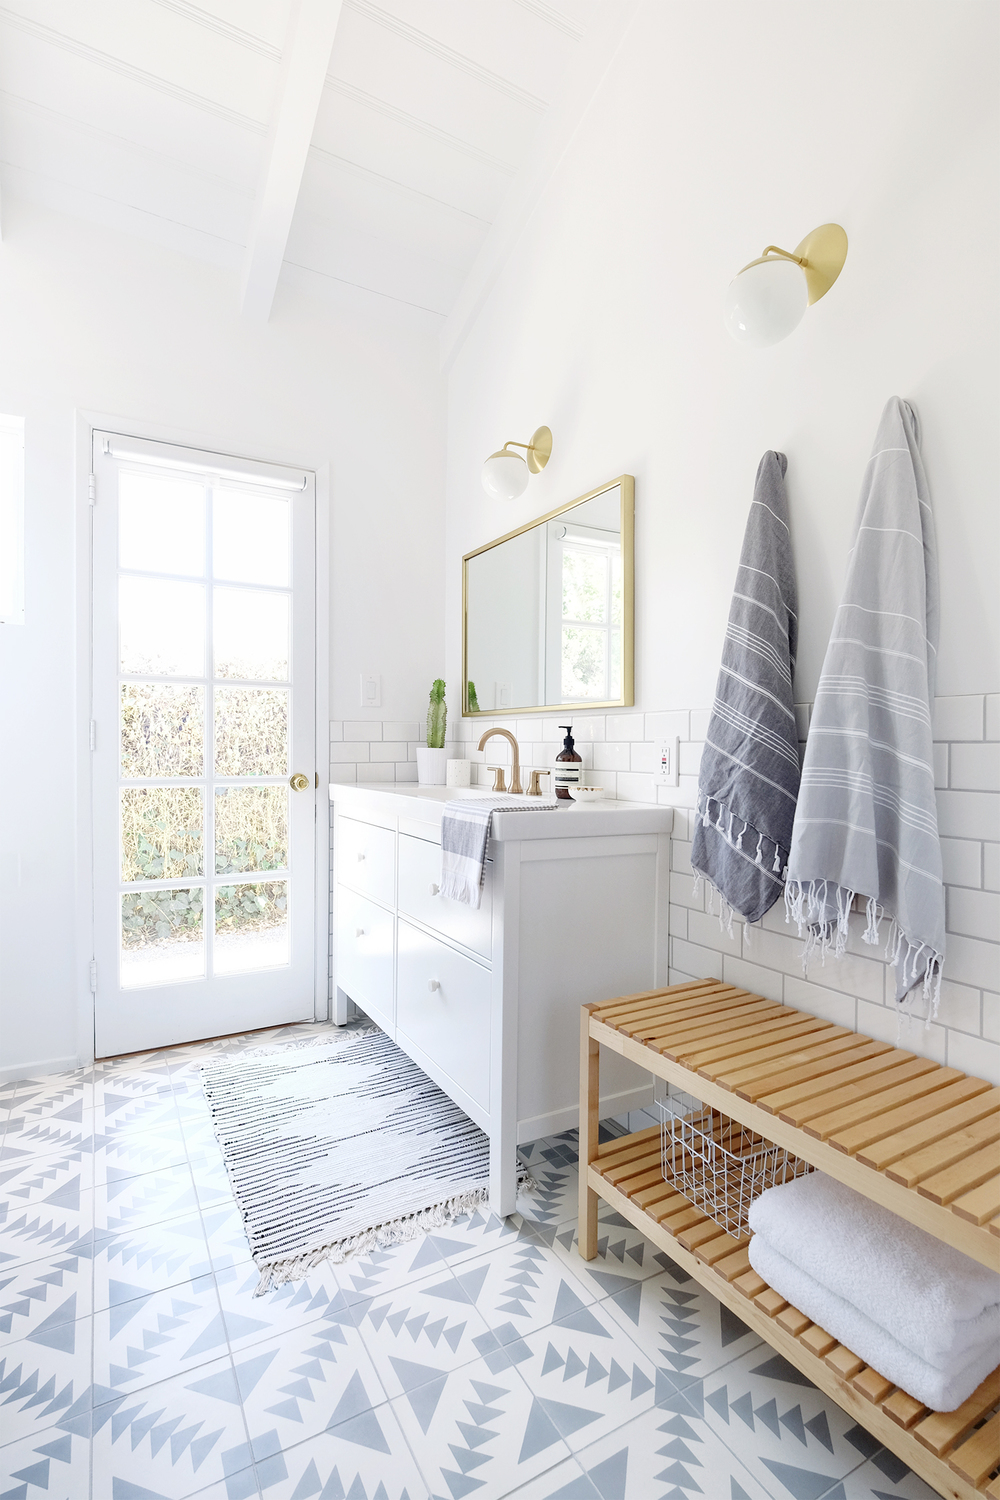 Our Shower Bathroom Was Previously Known As The Yellow Bath For Its Pastel Sinks And Tiles Goal Remodel Low Maintenance